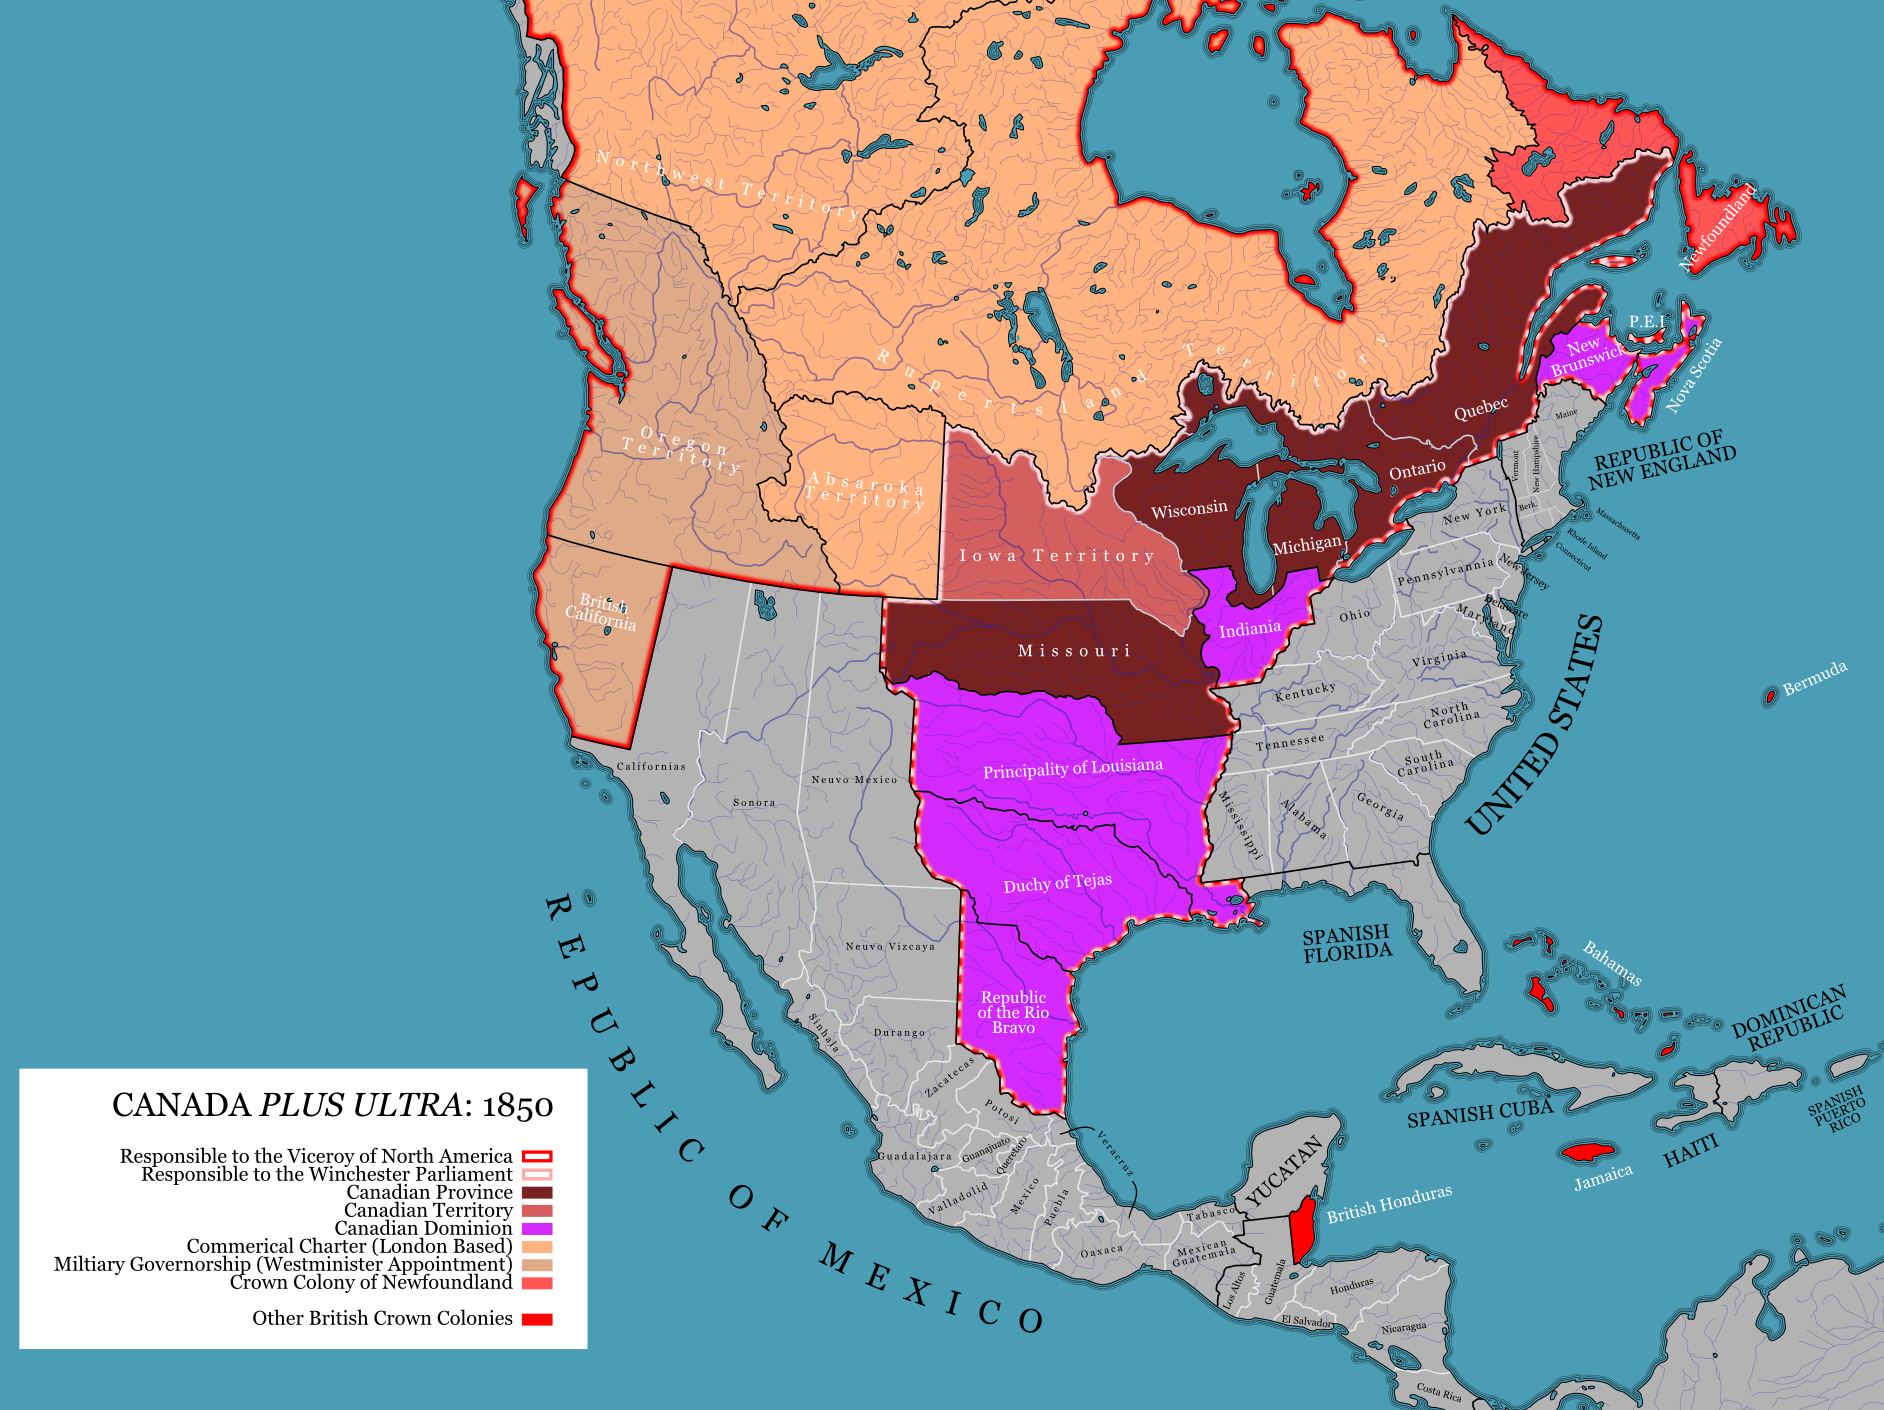 Map Of Canada In 1850.Dathicanada1850 Trial By Iainfluff On Deviantart